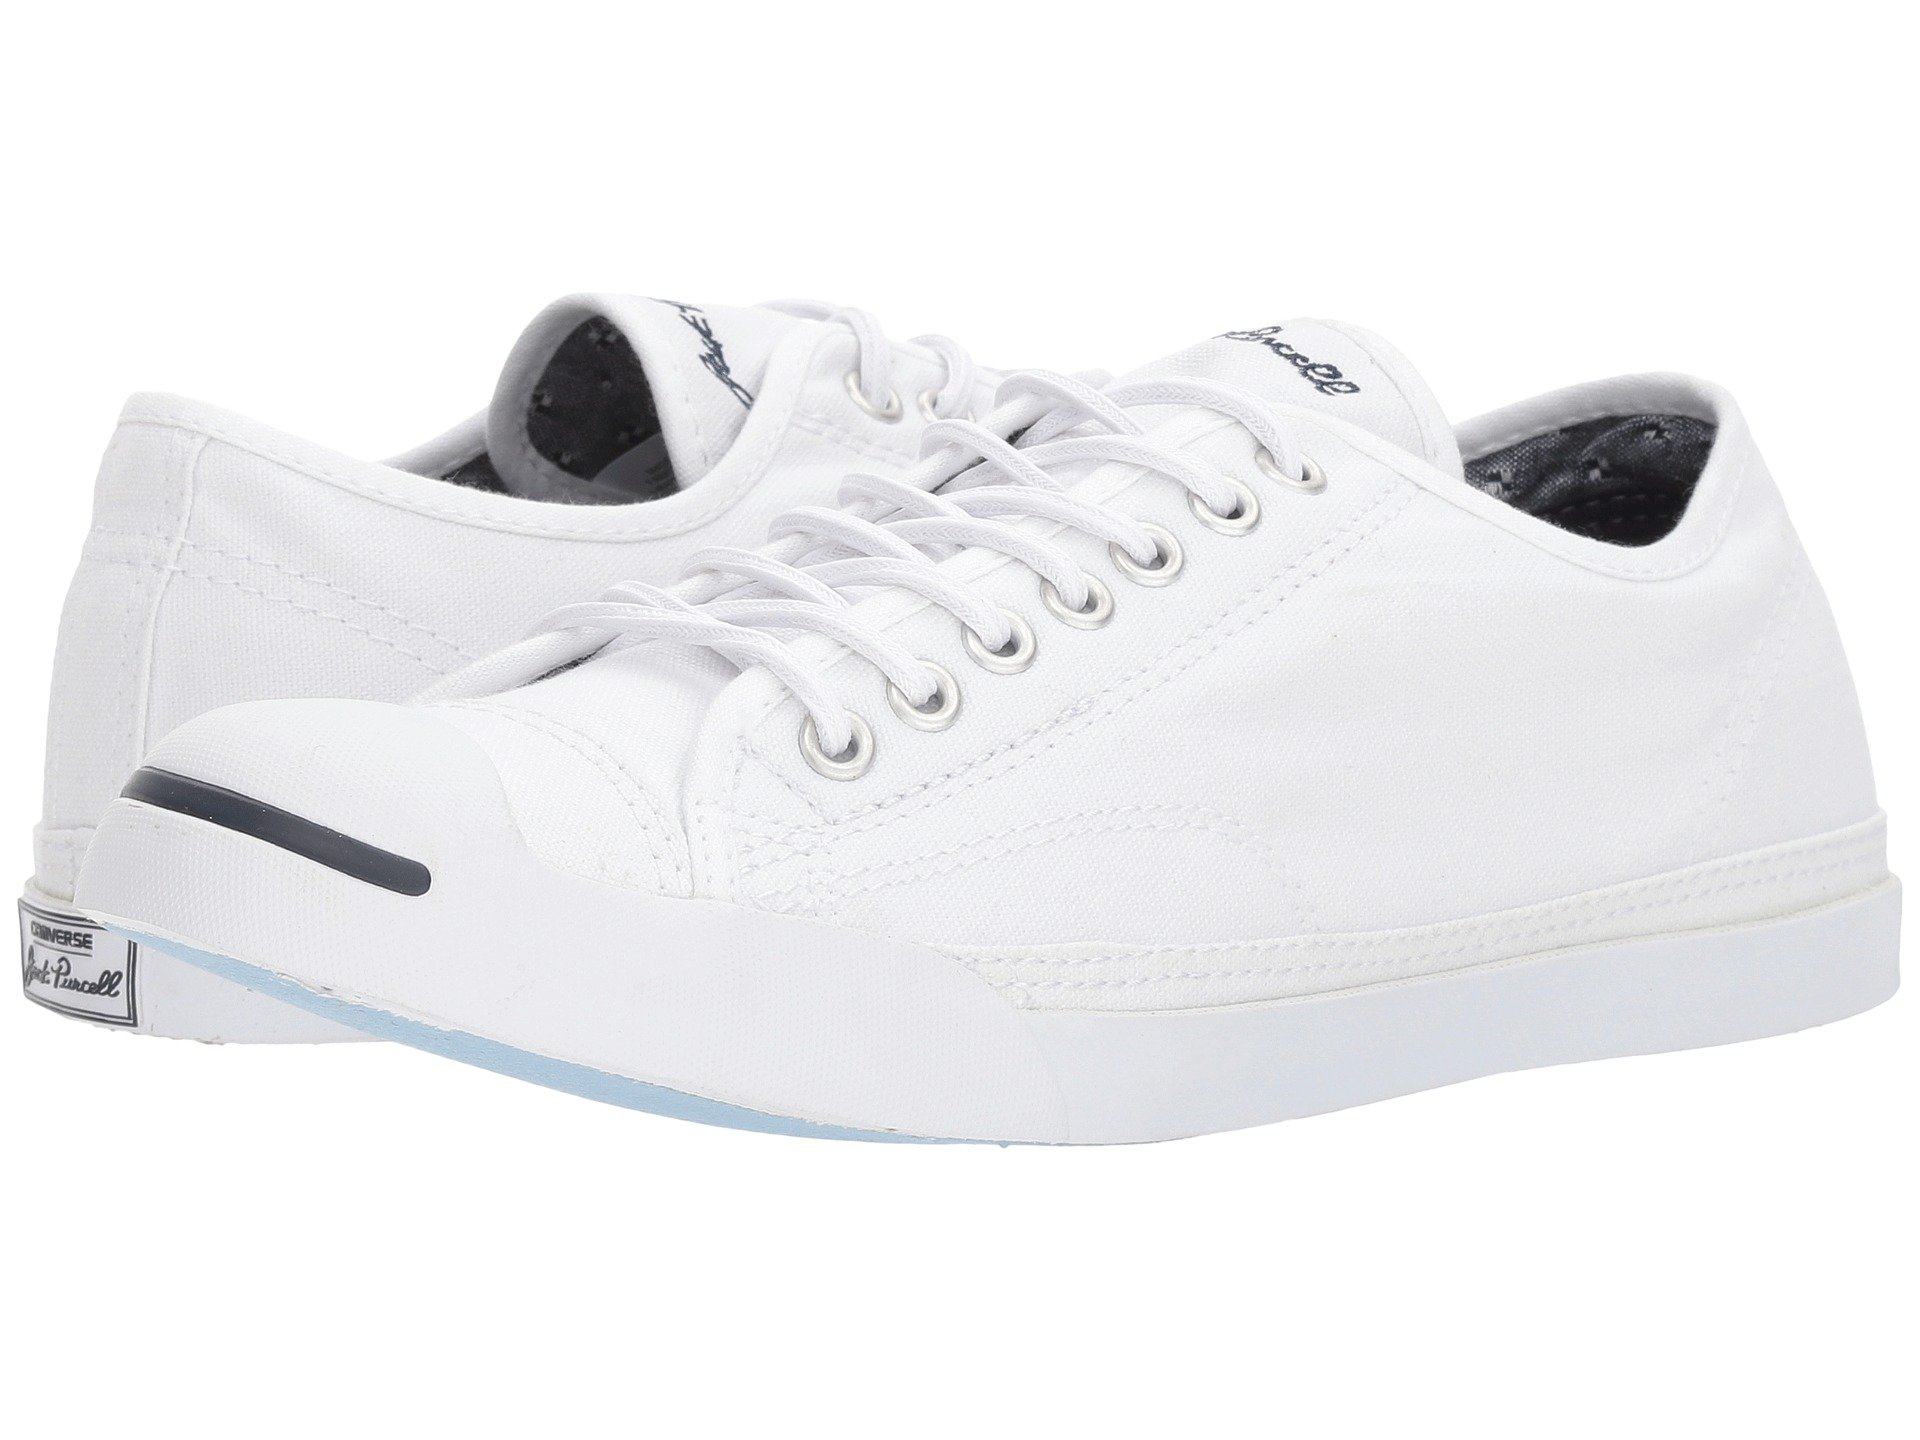 d30191f3340a Converse  Jack Purcell - Lp  Low Top Sneaker (Women) In White